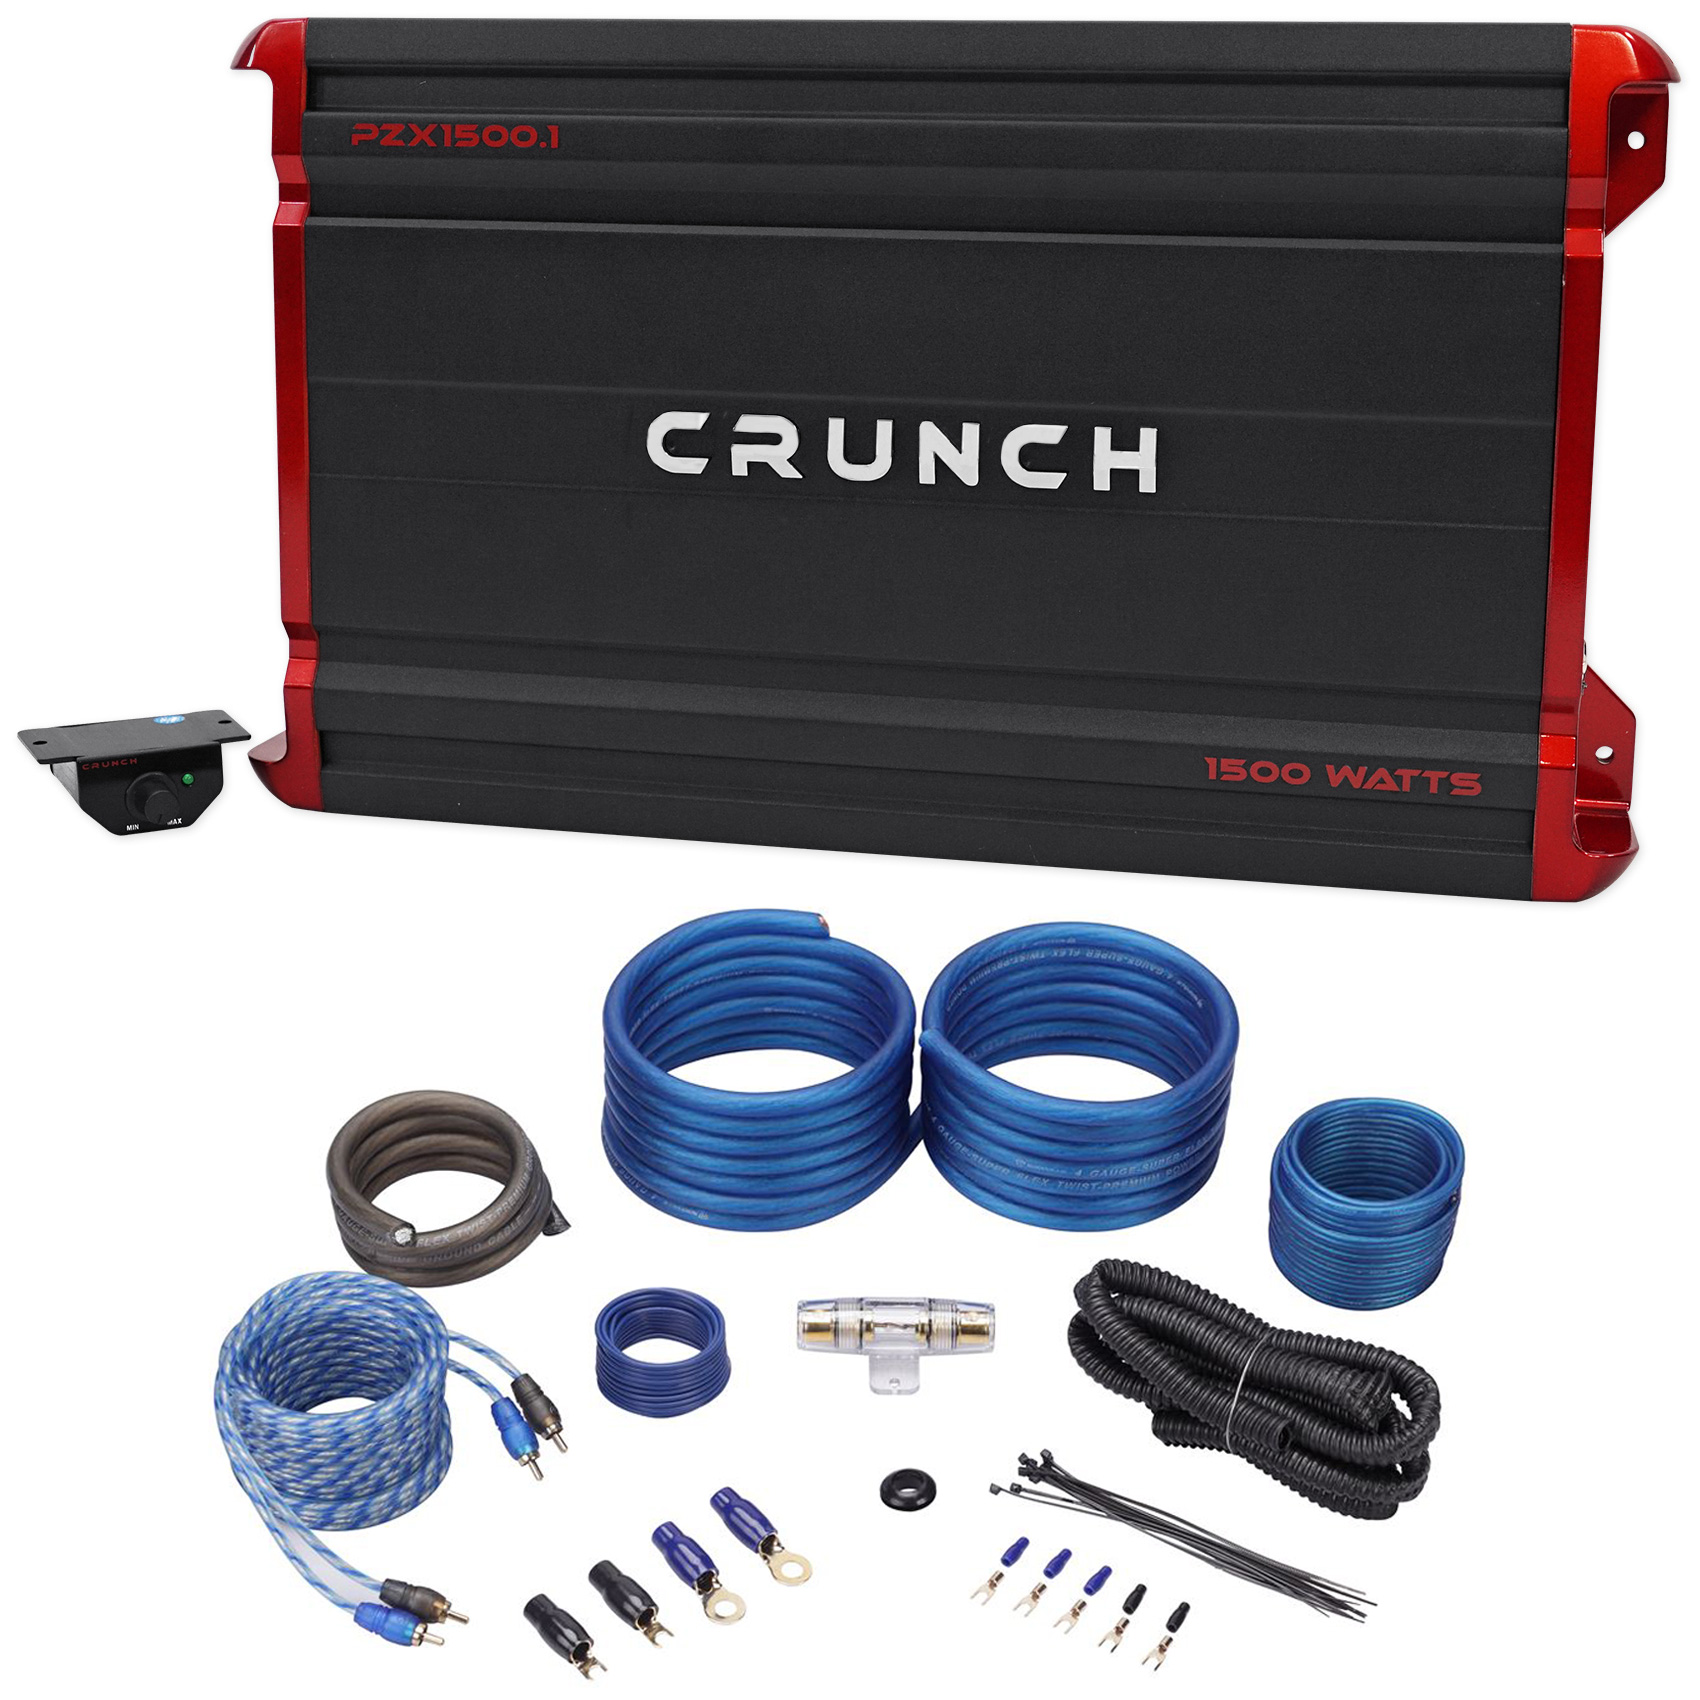 Crunch PZX1500.1 1500 Watt Mono Class A/B Car Audio Amplifier+Amp Wire